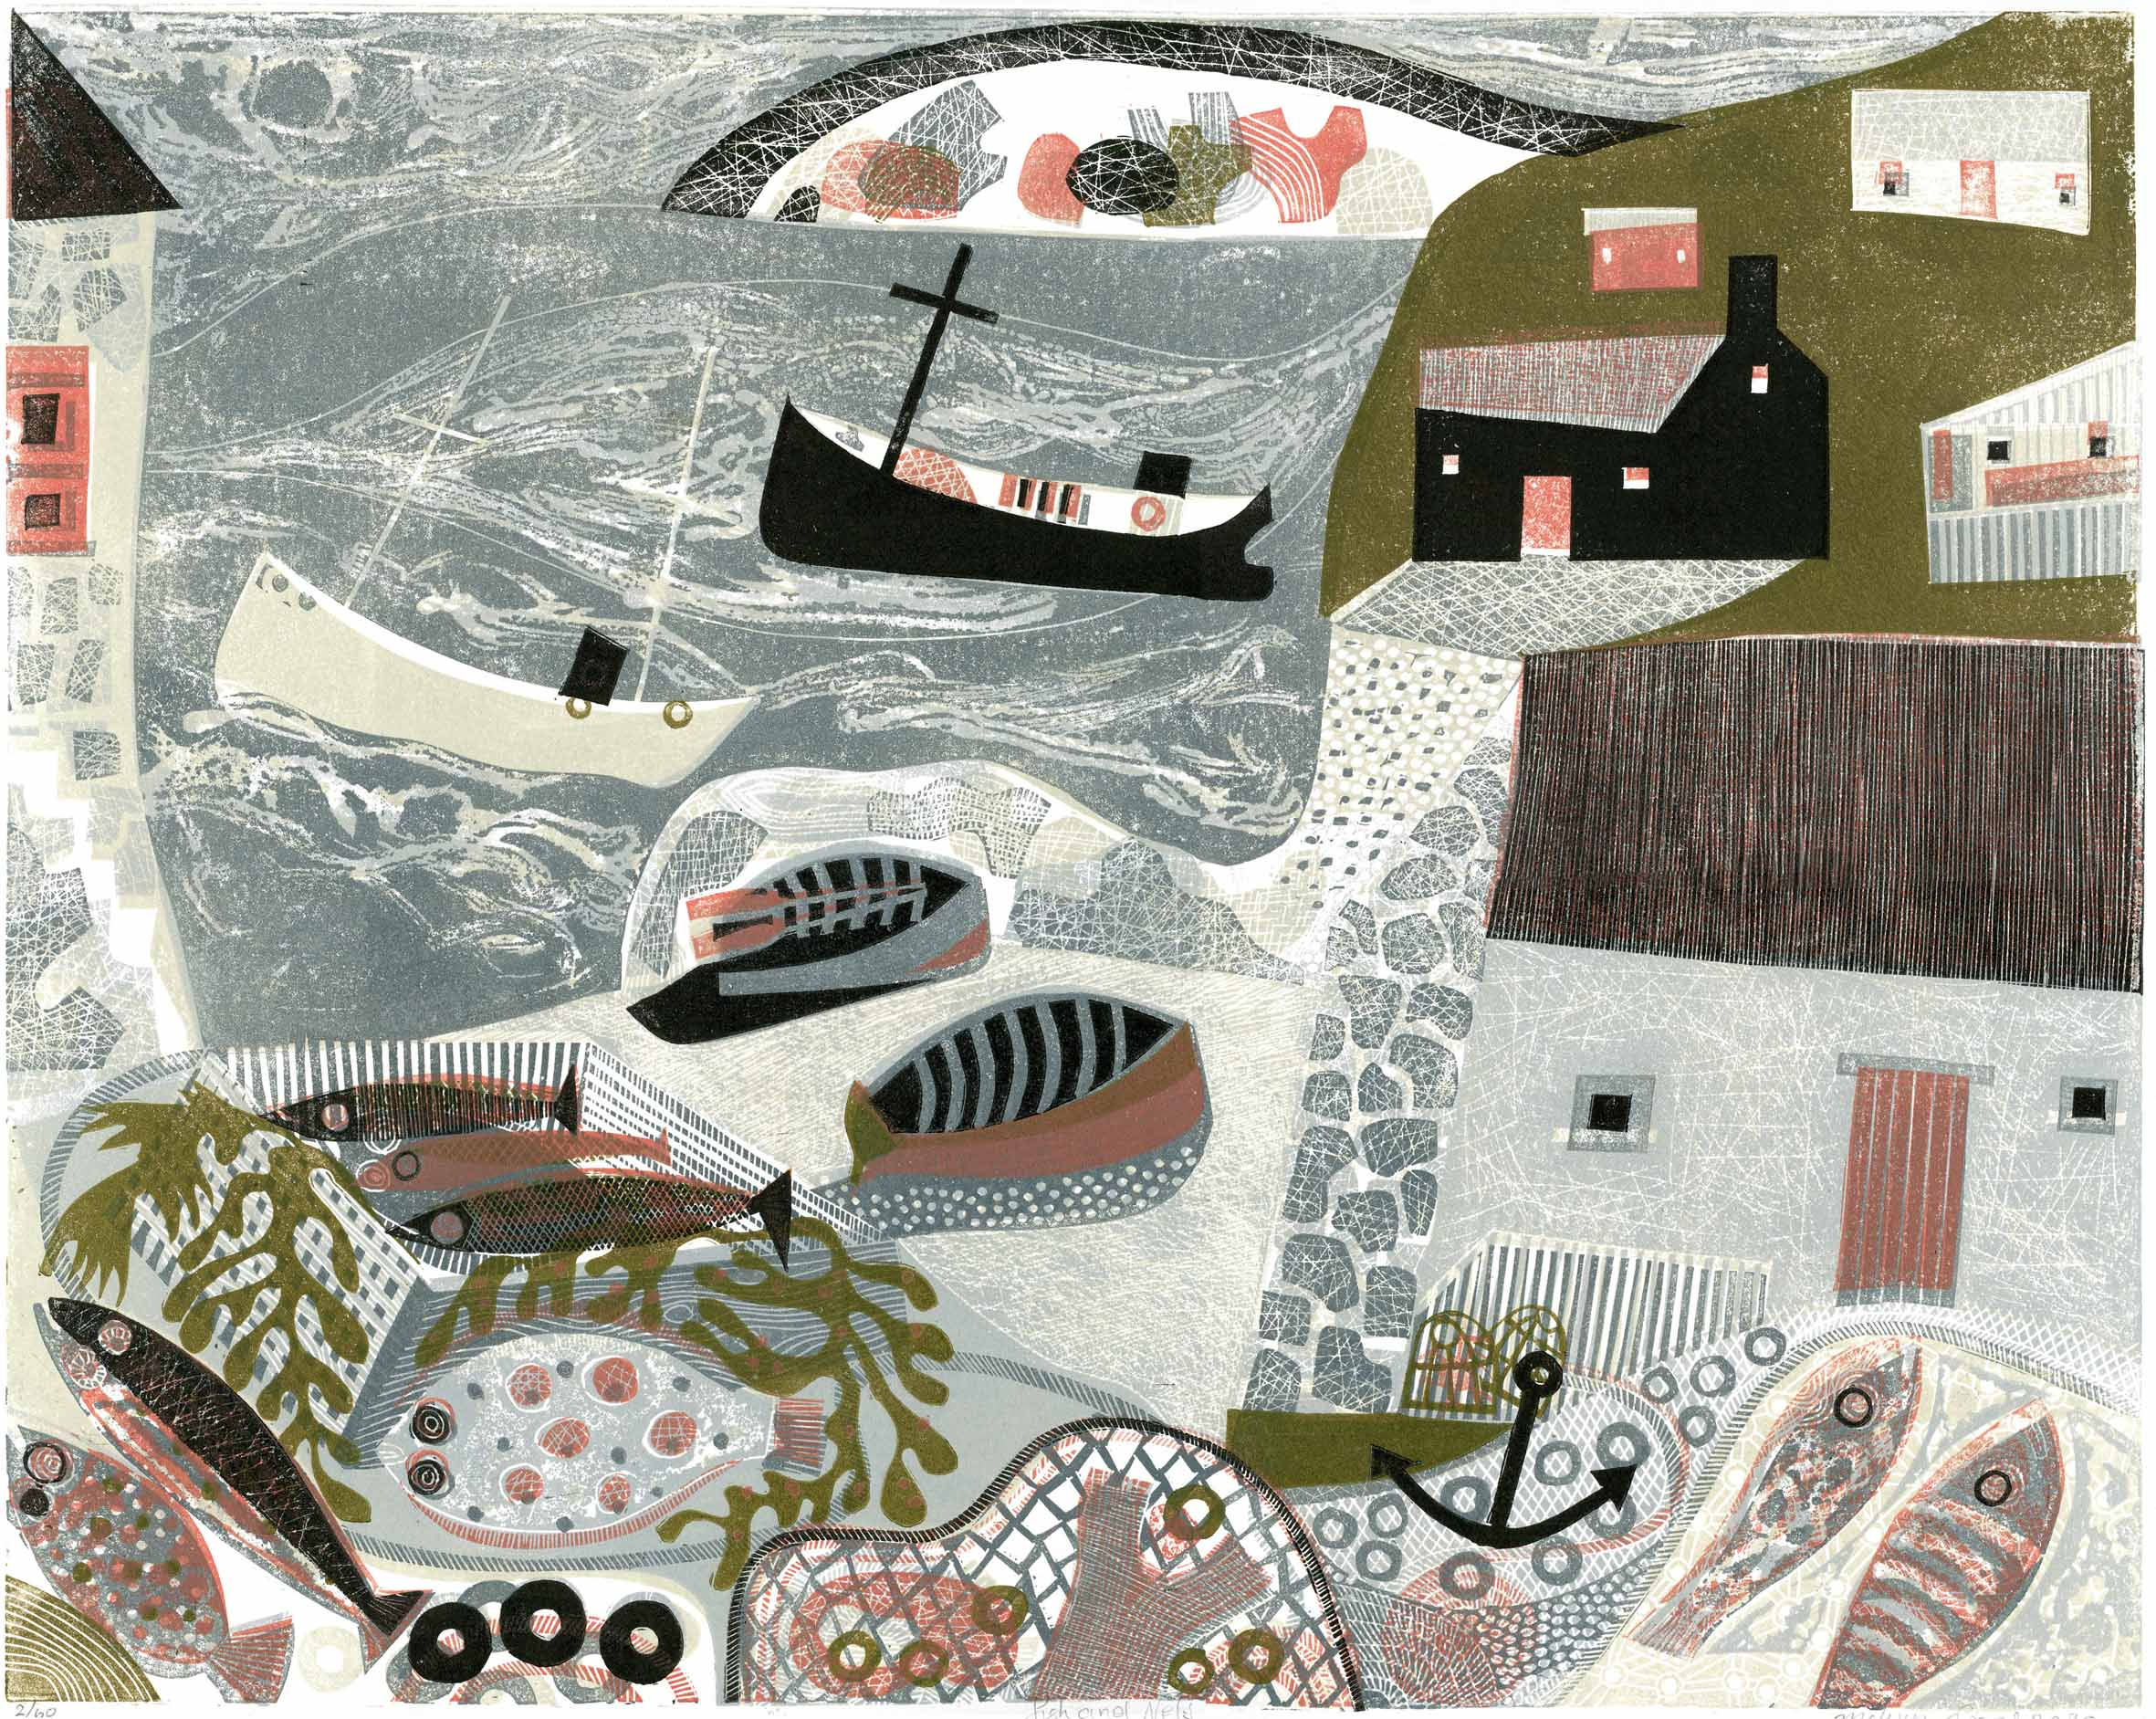 Fish and Nets Melvyn Evans Linocut print, 40 x 50cm edition of 60